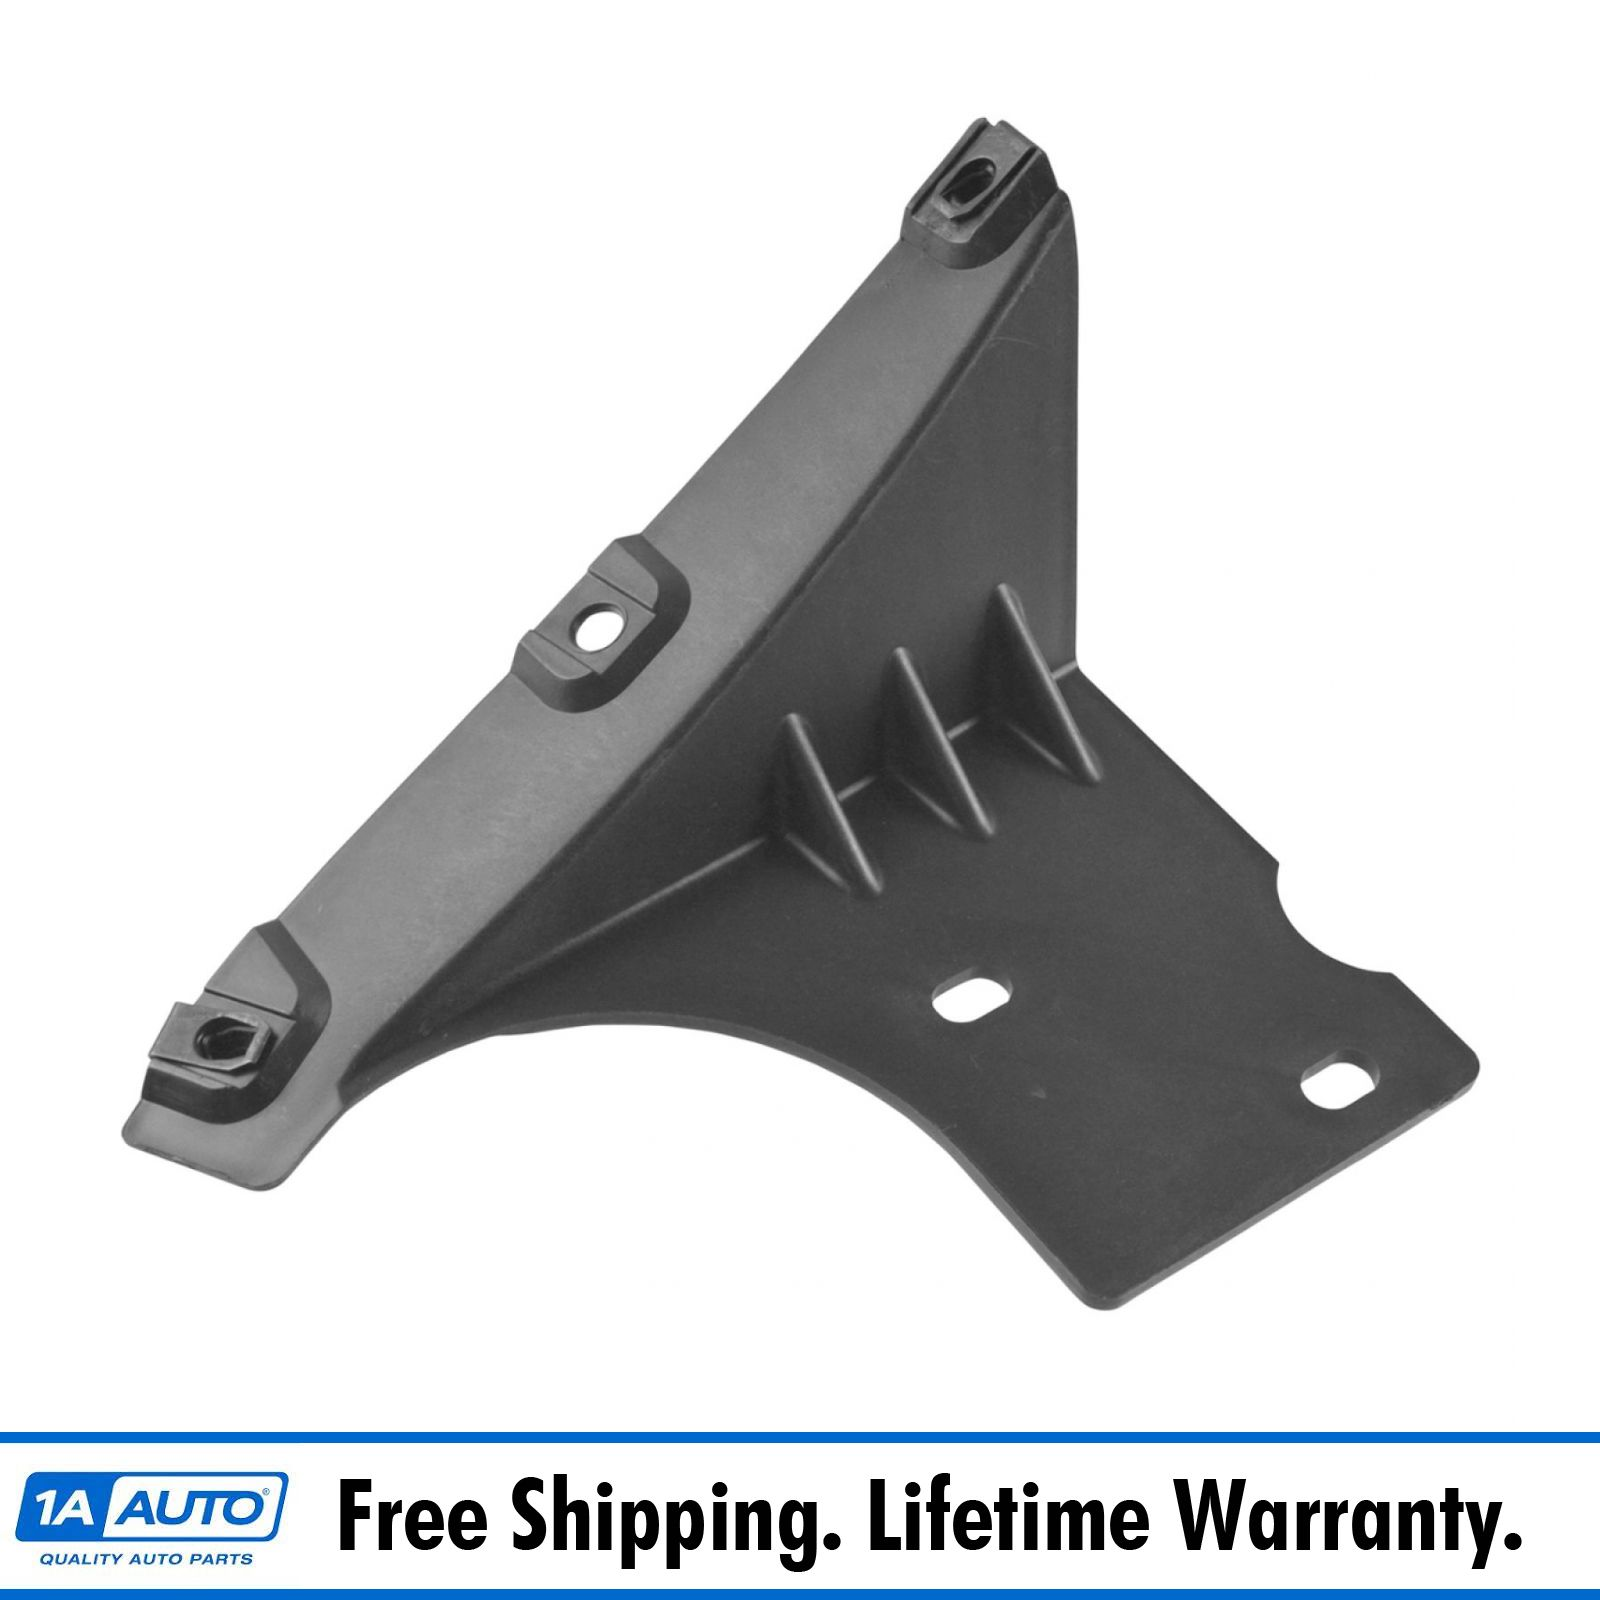 OEM 55077568AC Bumper Cover Mounting Bracket Outer Rear RH RR for Dodge Durango